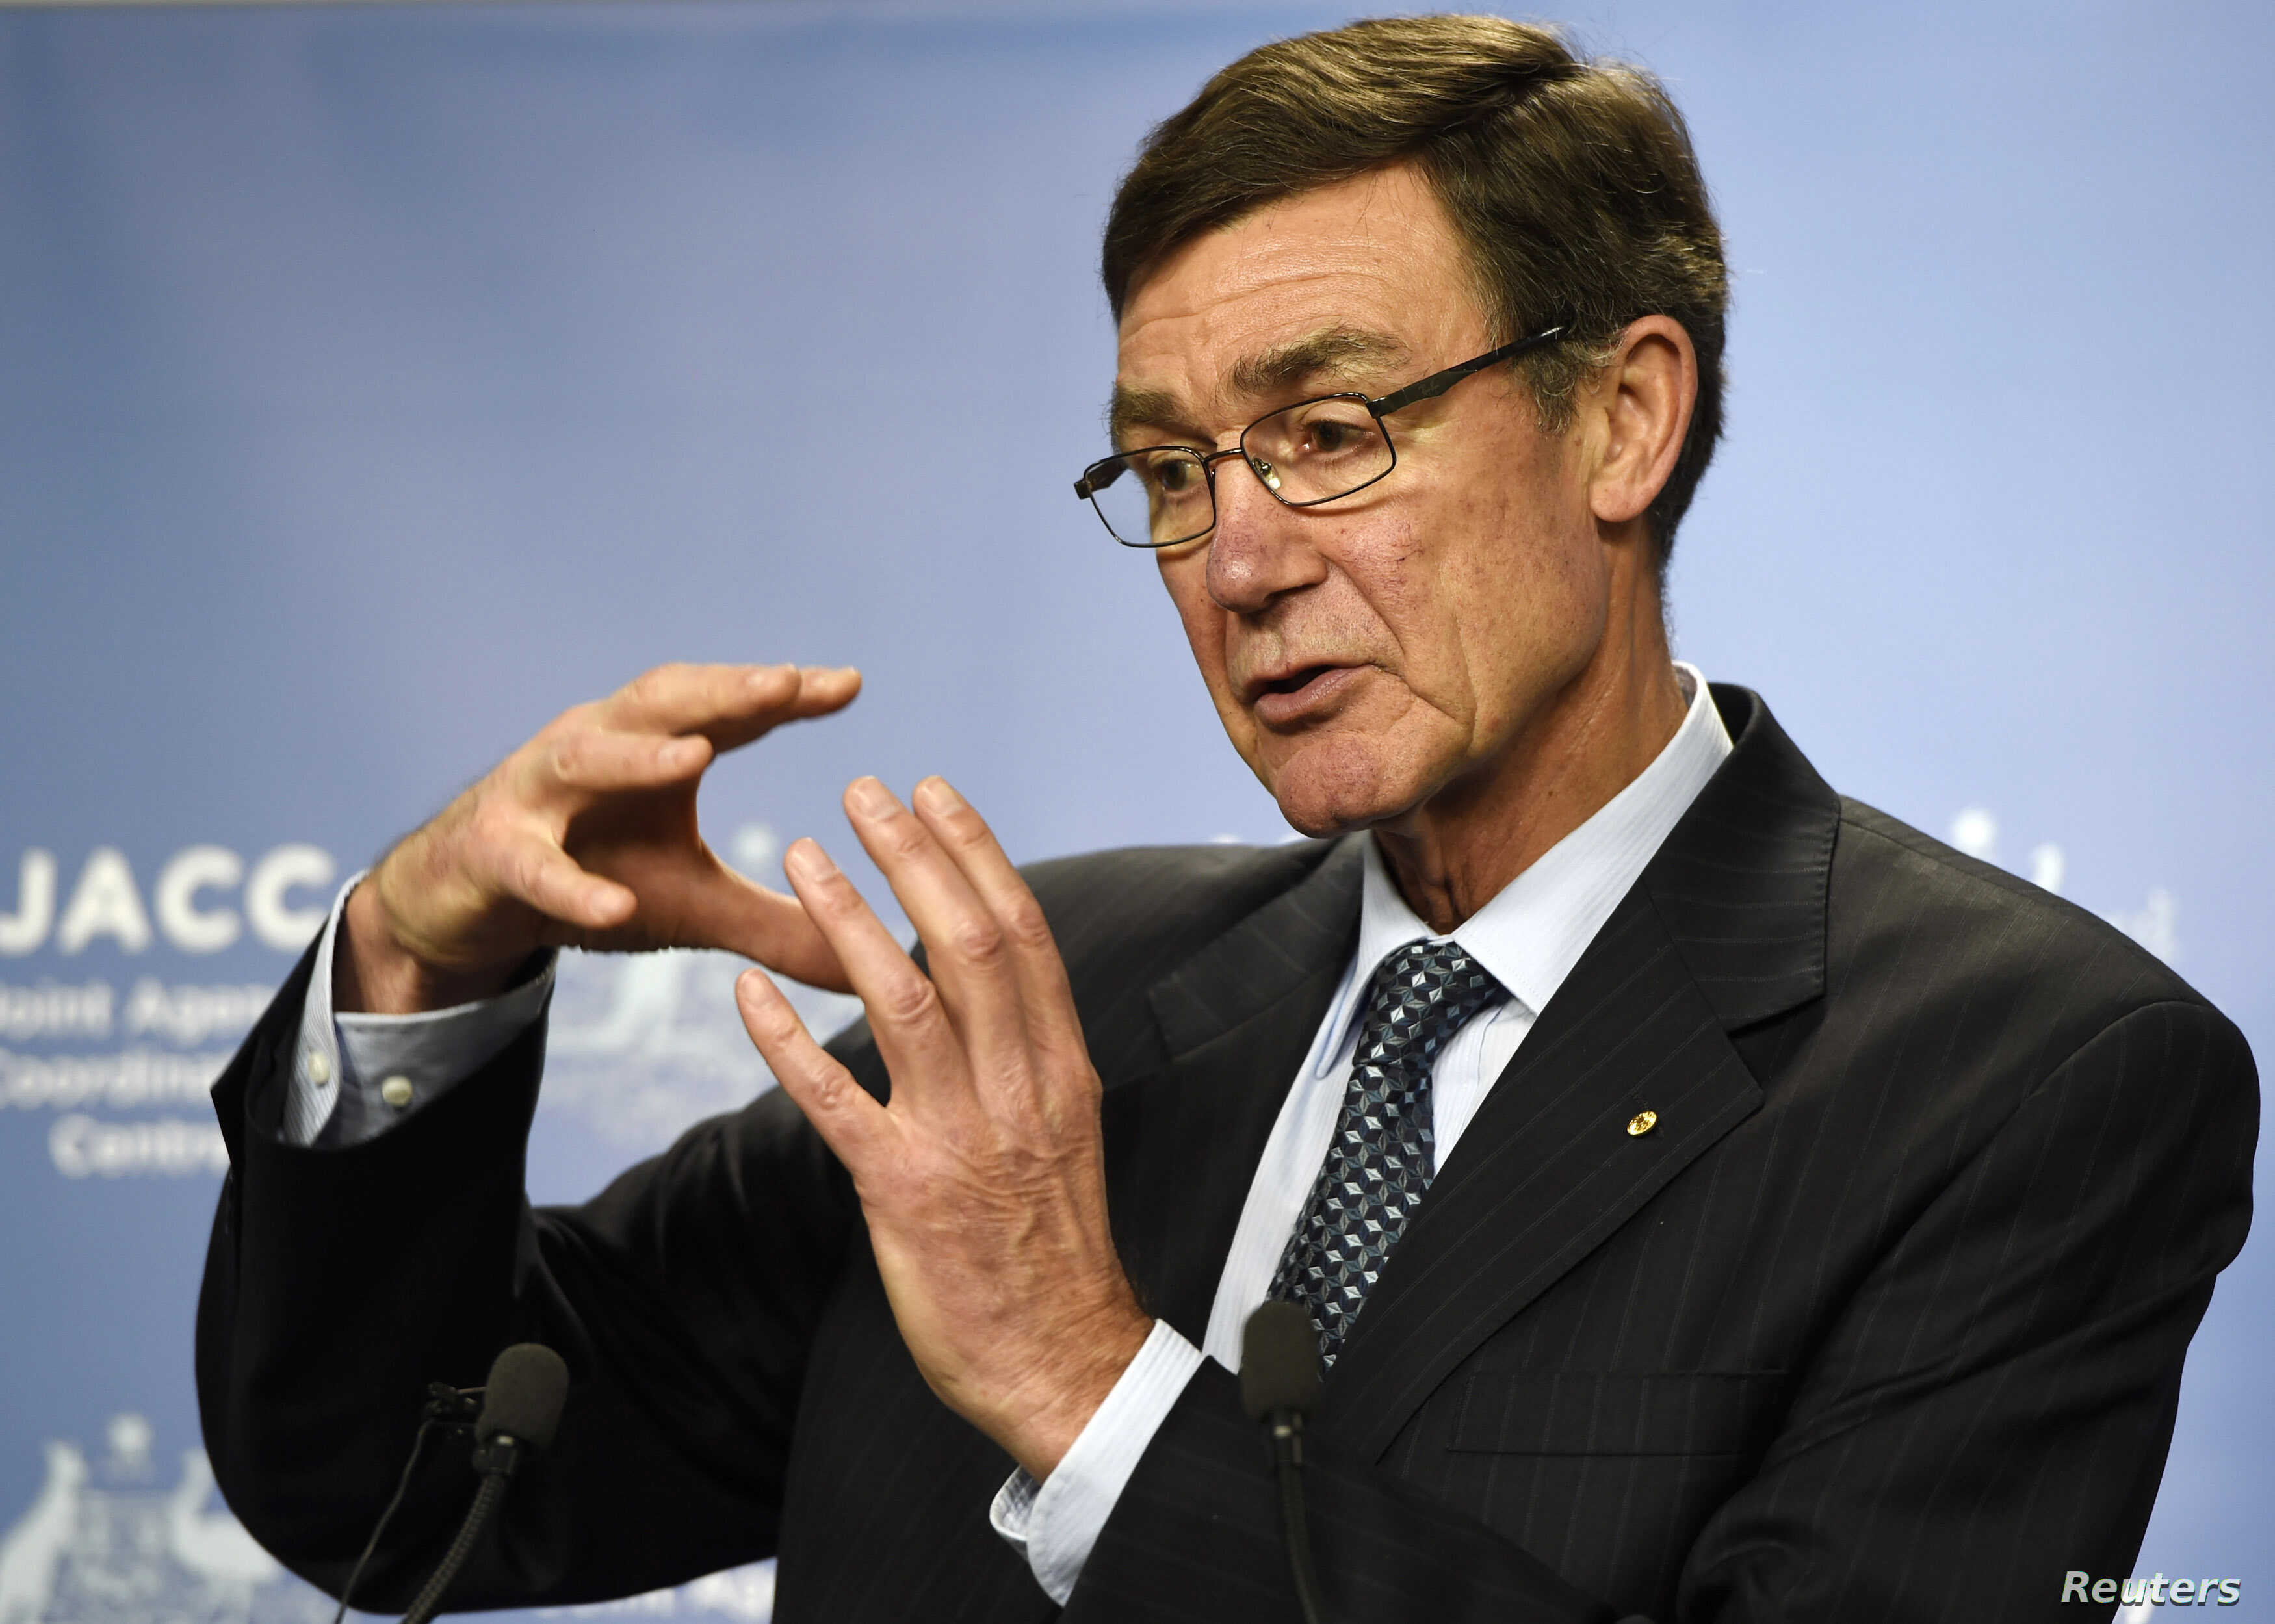 Angus Houston, a retired air chief marshal and head of the Australian agency coordinating the search for the missing Malaysia Airlines flight MH370, gestures as he addresses the media at Dumas House in Perth, April 9, 2014.